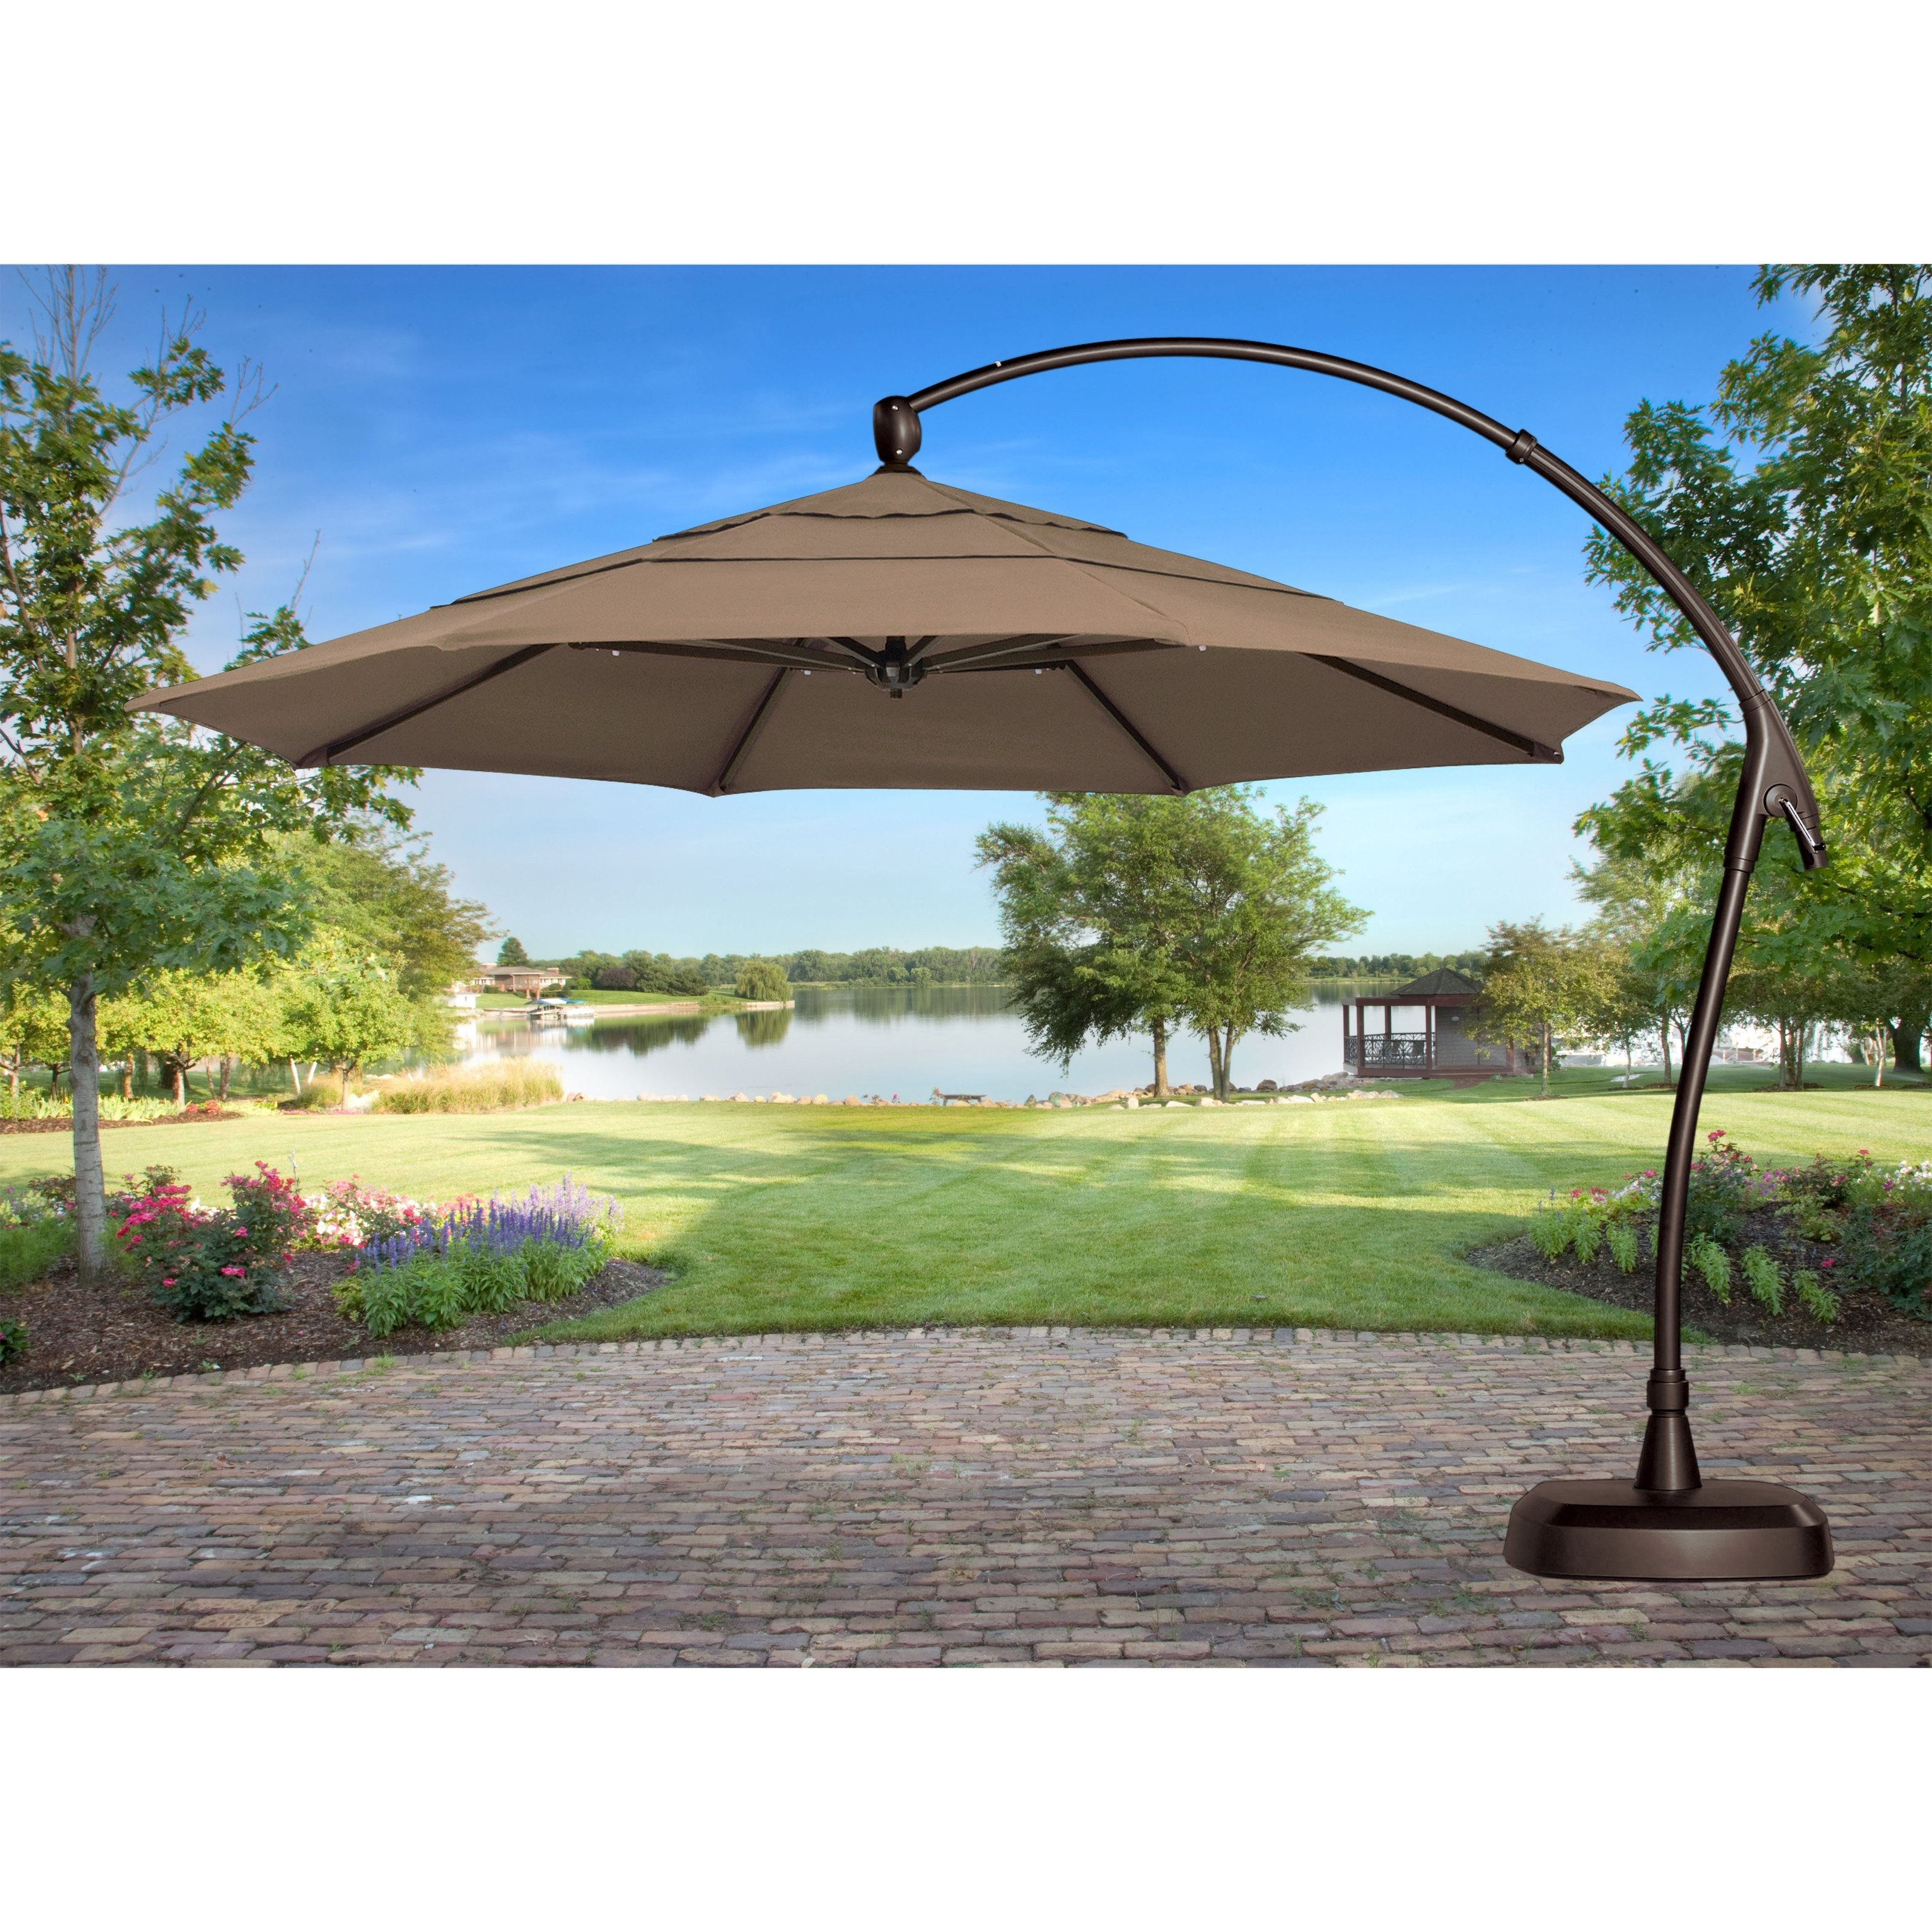 Treasure Garden 11 Ft. Cantilever Offset Sunbrella Patio Umbrella Intended For Latest 11 Ft (View 19 of 20)